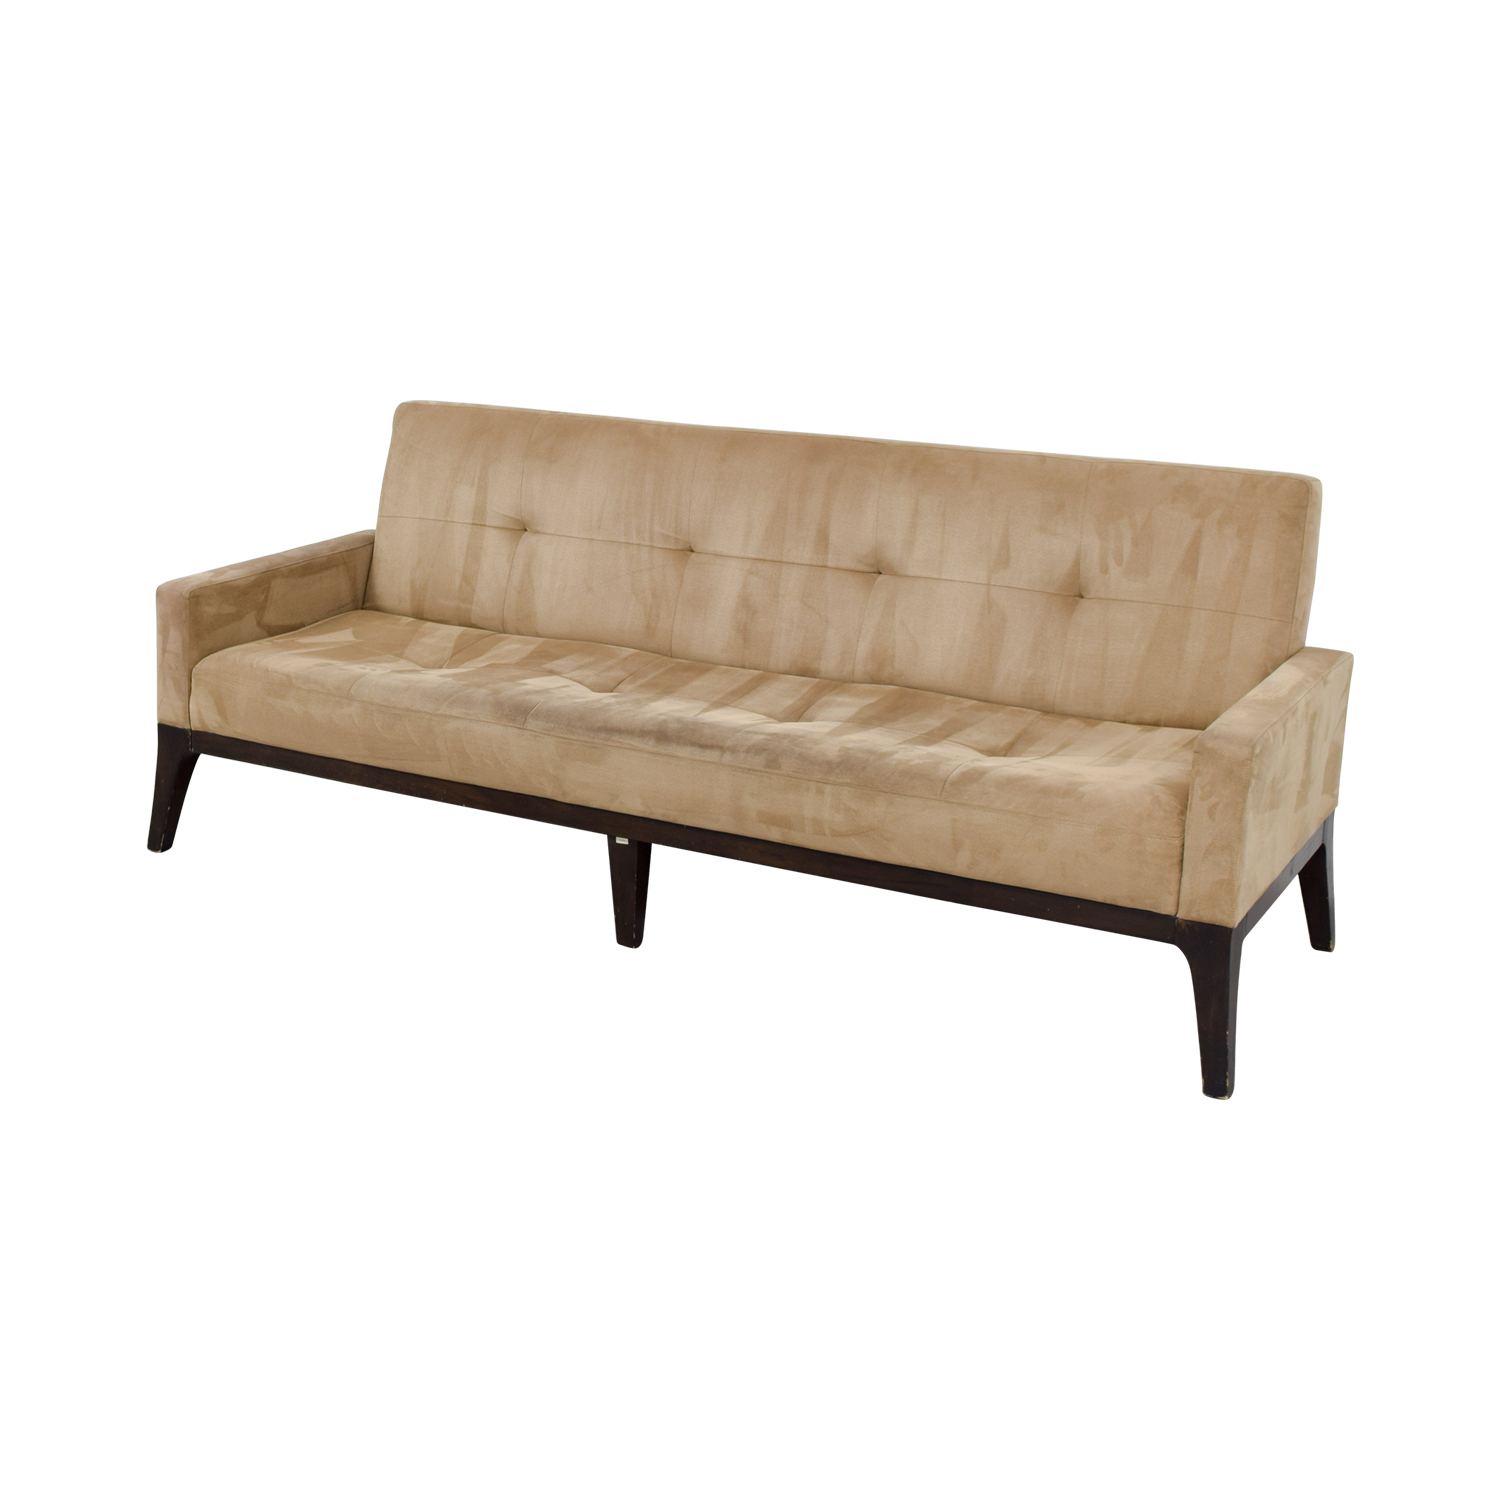 small sectional sofa west elm cotton covers 81 off mid century tan tufted